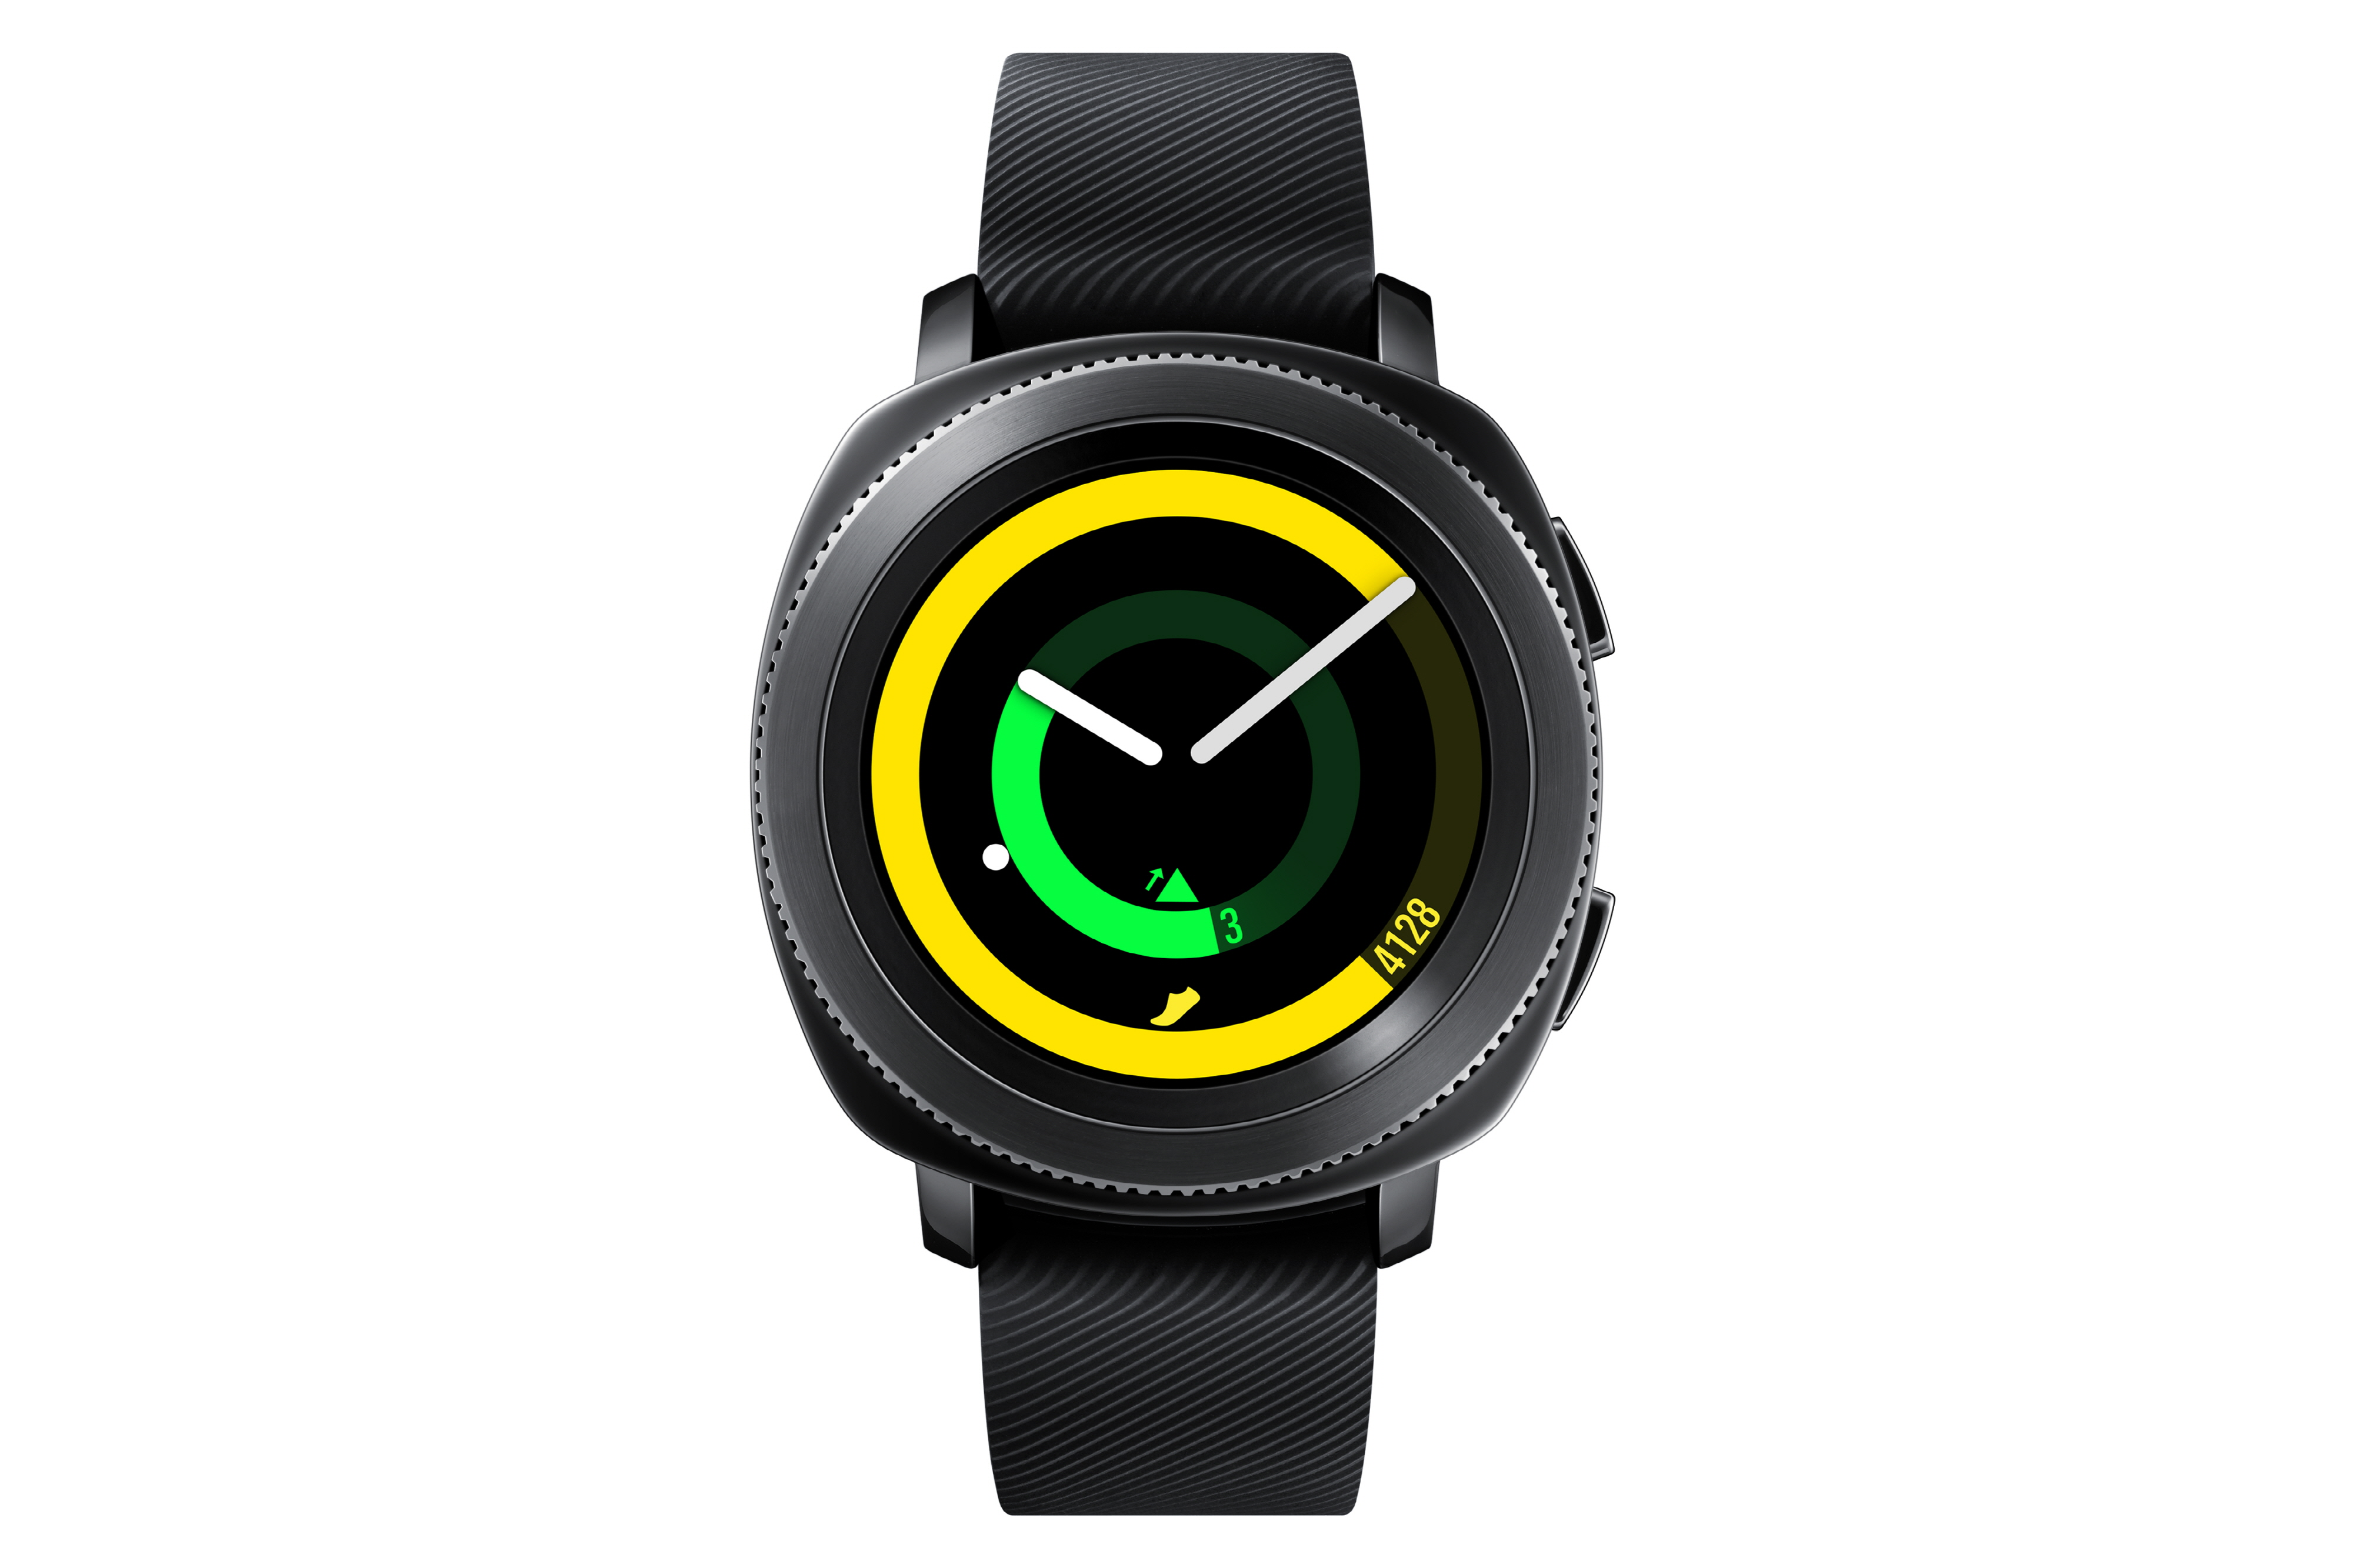 Samsung Gear Sport 4 First It Was Speedo Now Samsung Expands Partnership With Under Armour, For New Fitness Range